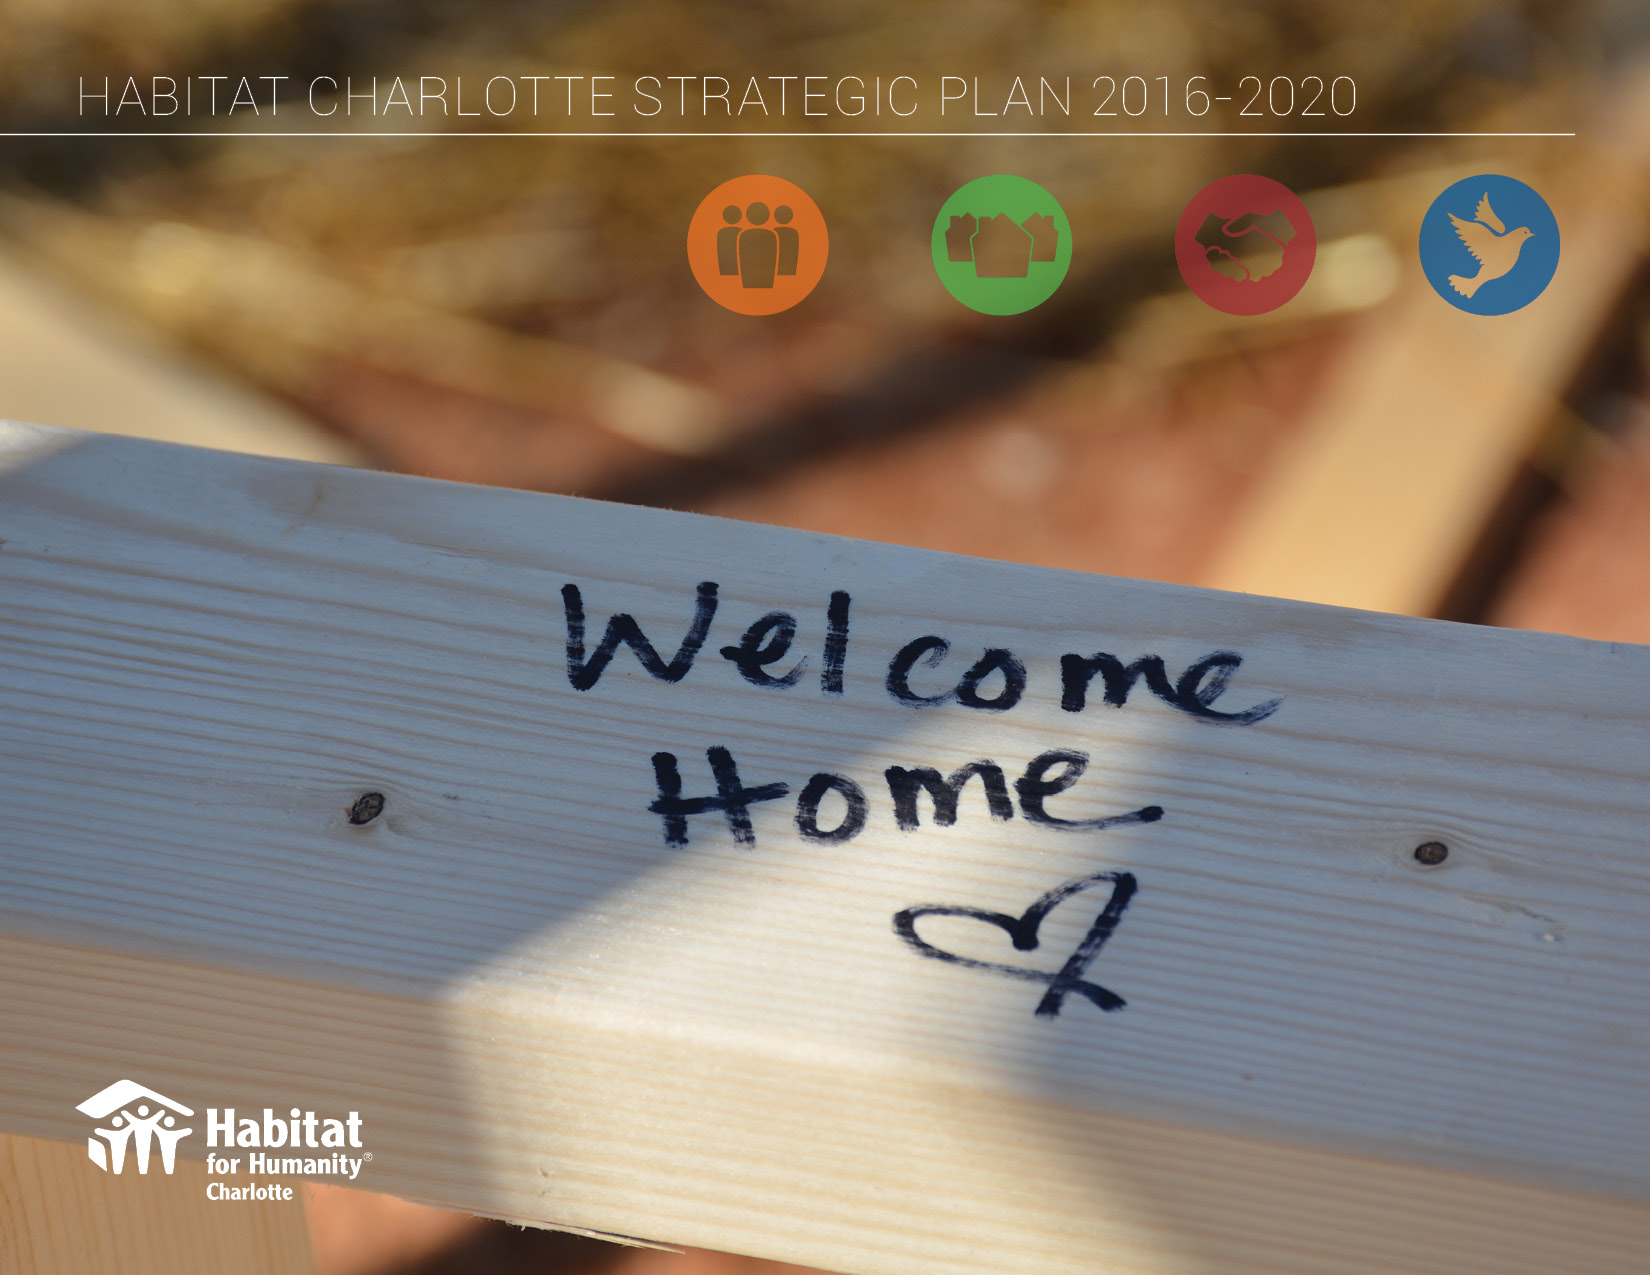 July 2016  - The Habitat for Humanity of Charlotte board of directors officially adopted the 2016-2020 Strategic Plan. The plan lays out specific timelines and goals in the four key areas of  People ,  Homes ,  Communities  and  Hope . You can view the printed version online by    clicking here   .